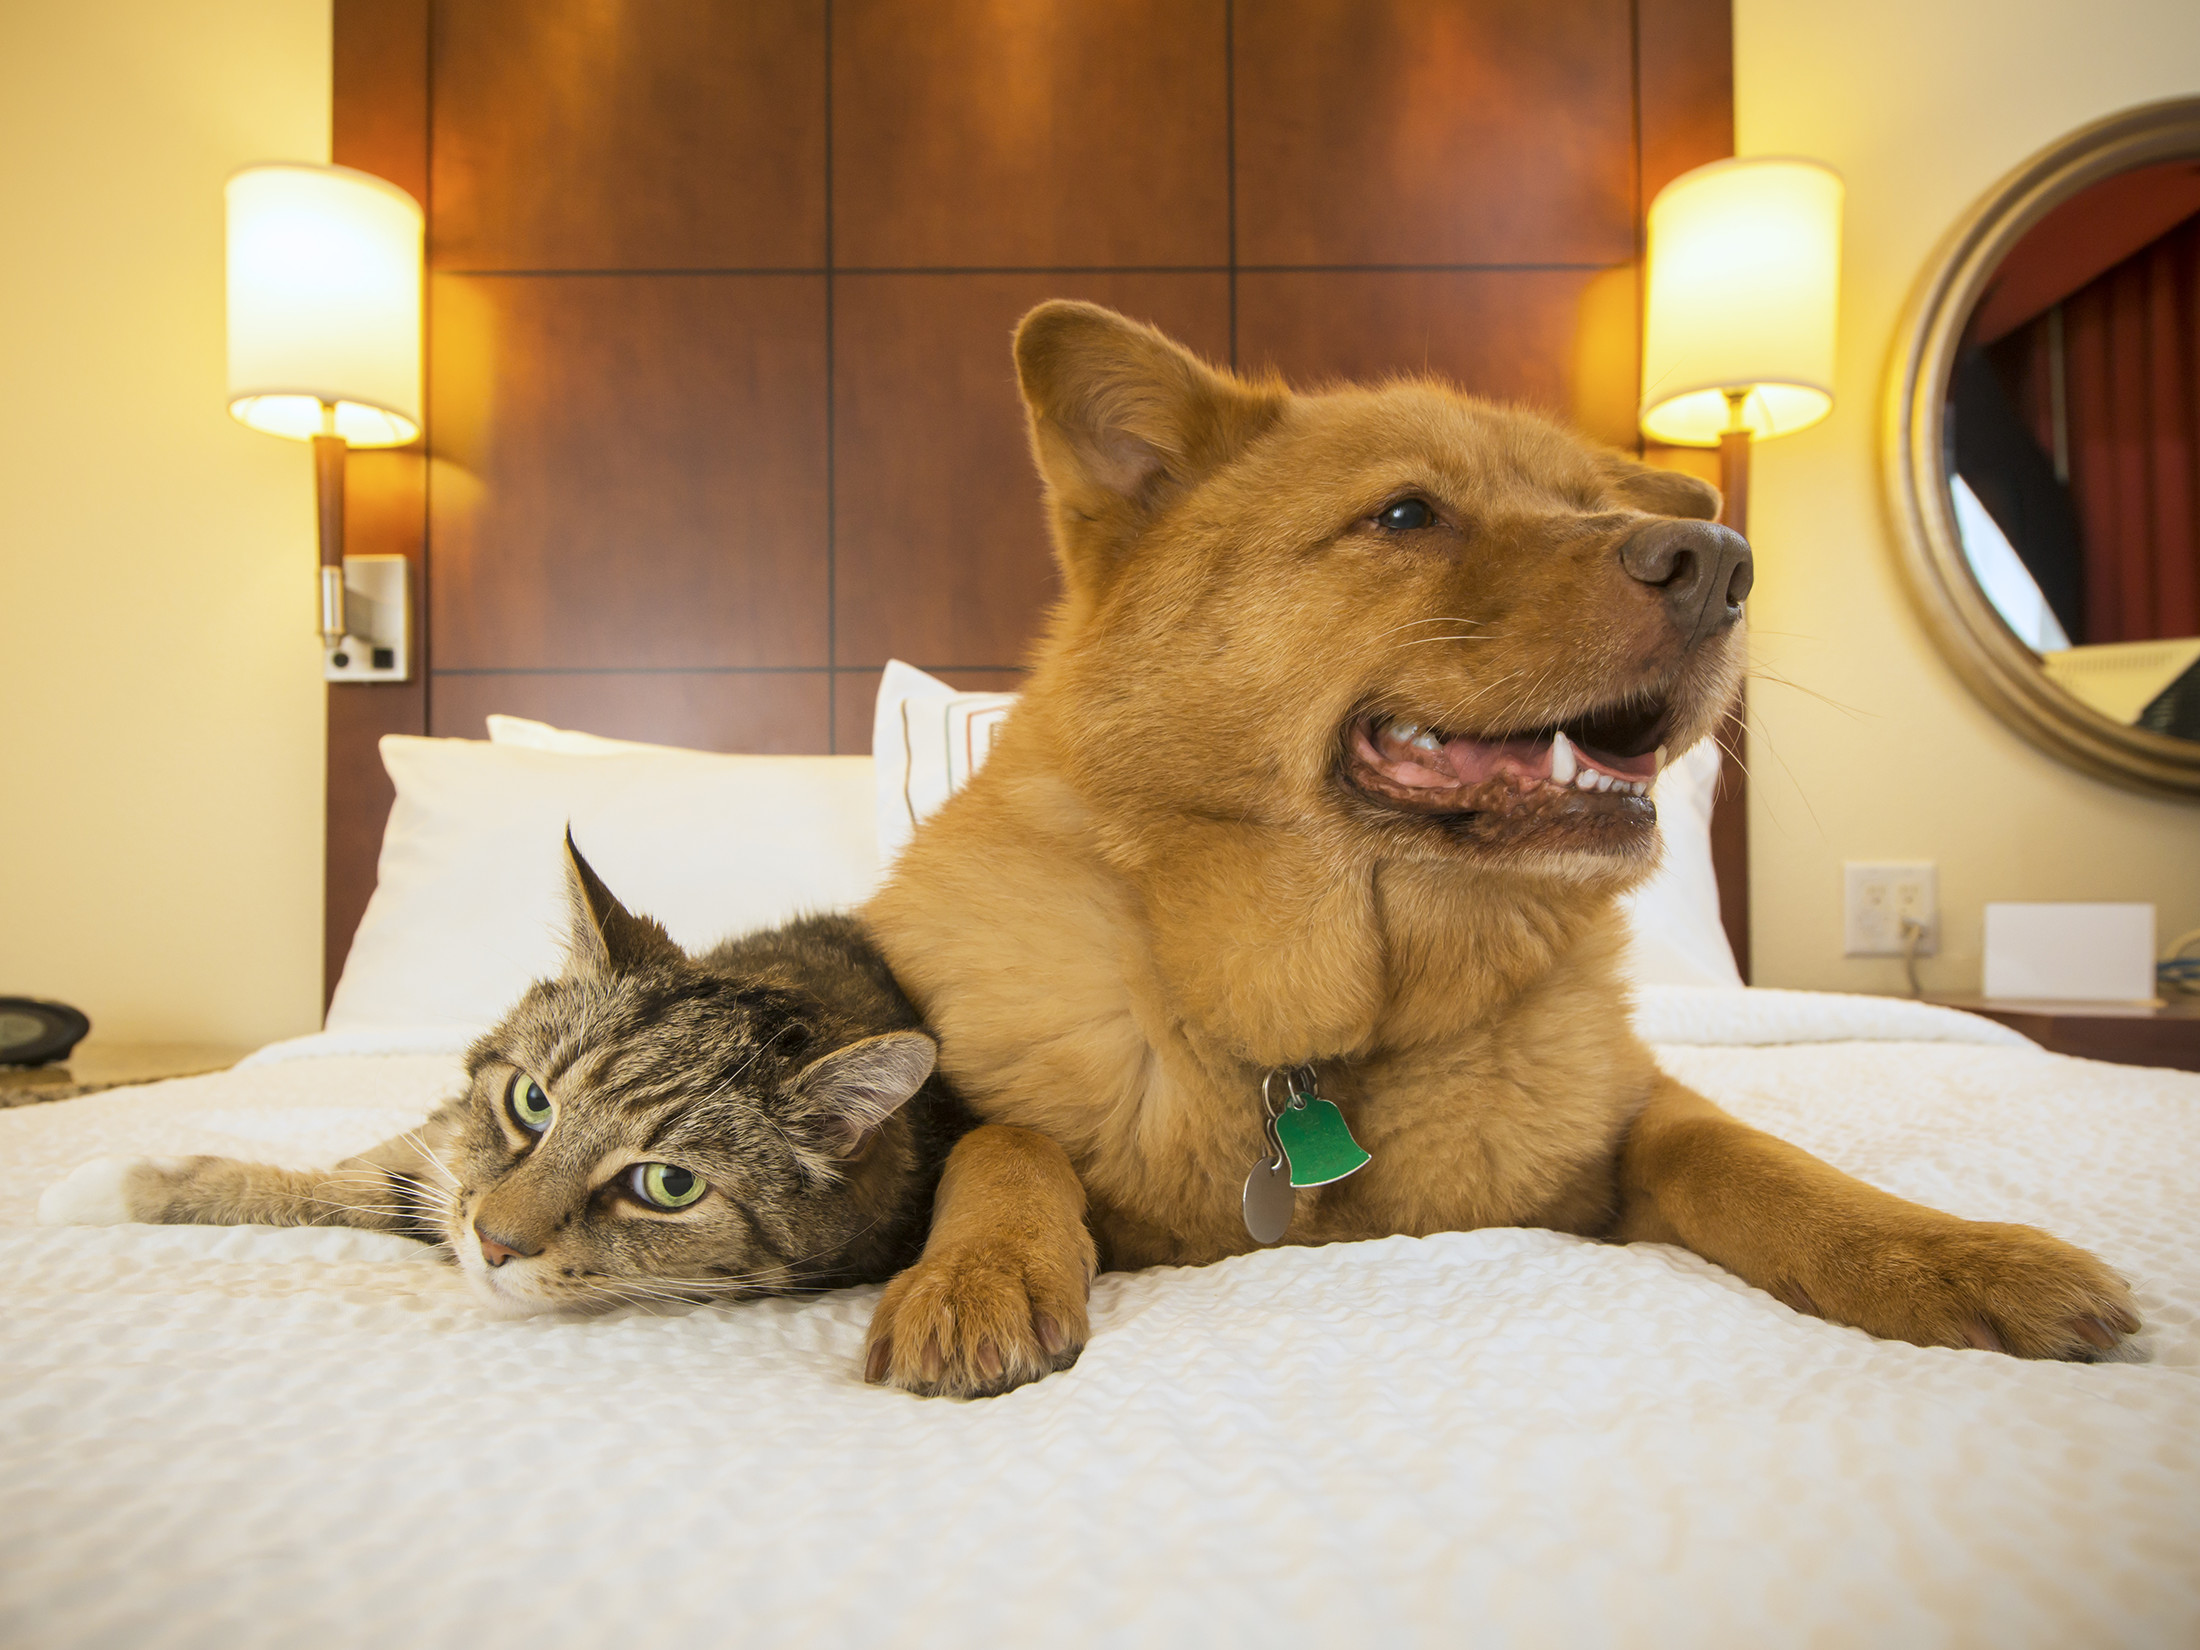 Pets on Hotel Room Bed